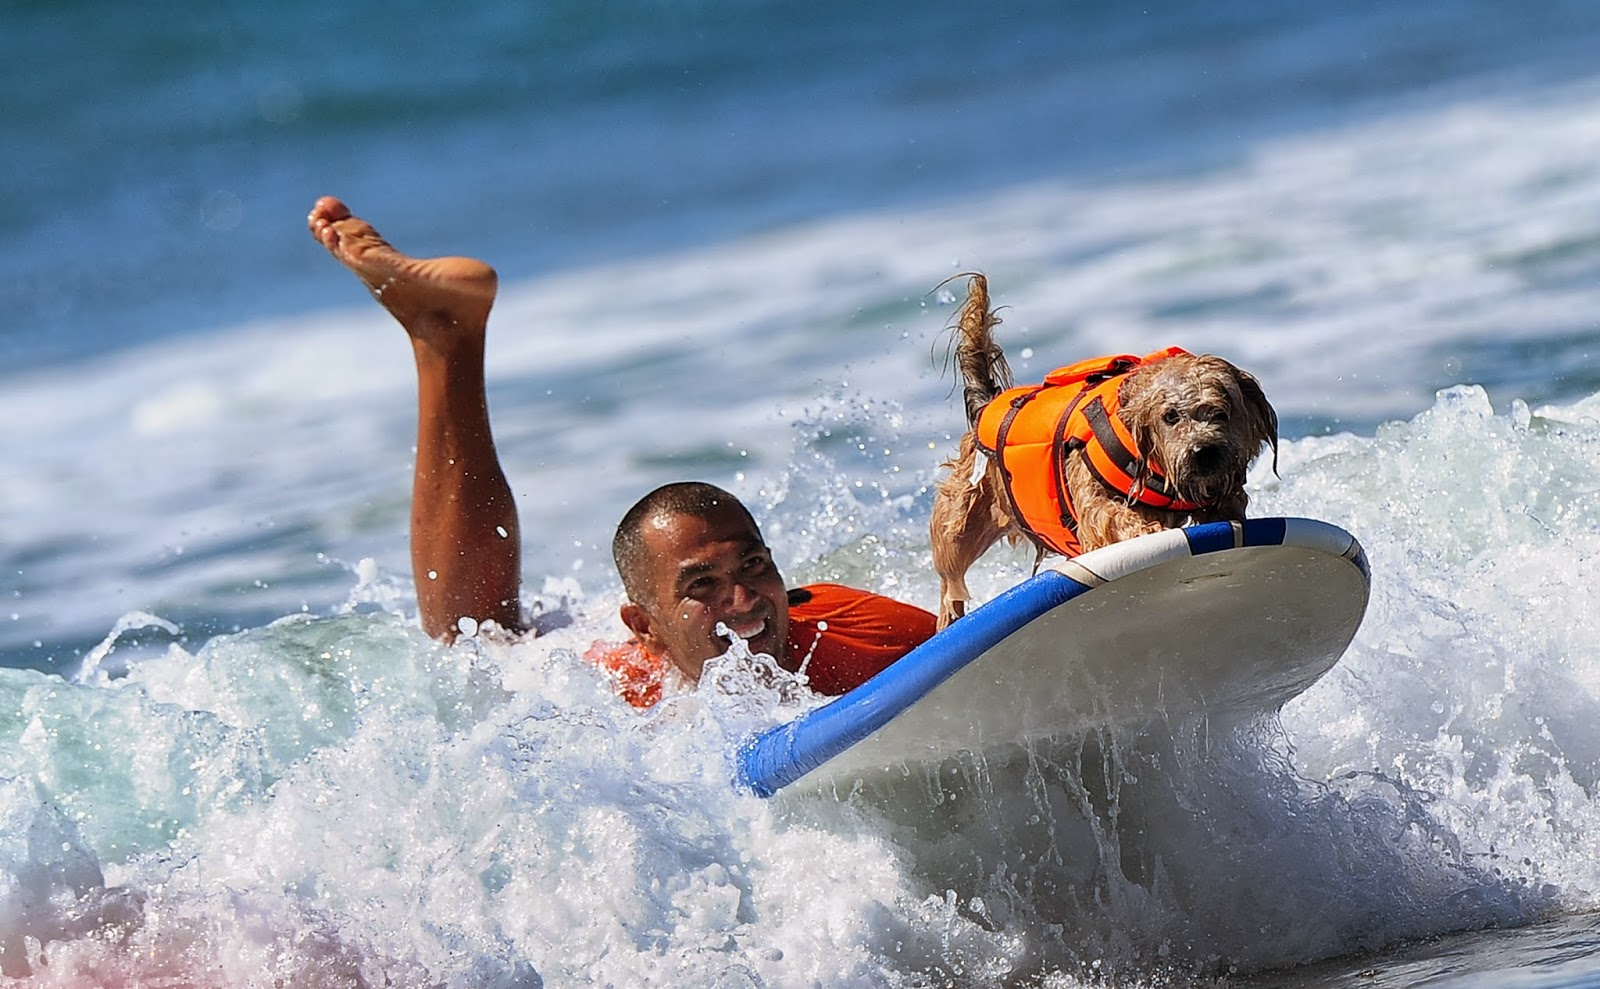 Animal, Annual Surf Dog Competition, Beach, California, Dog, Dogs, Huntington, Offbeat, Surf, Surfing, US,